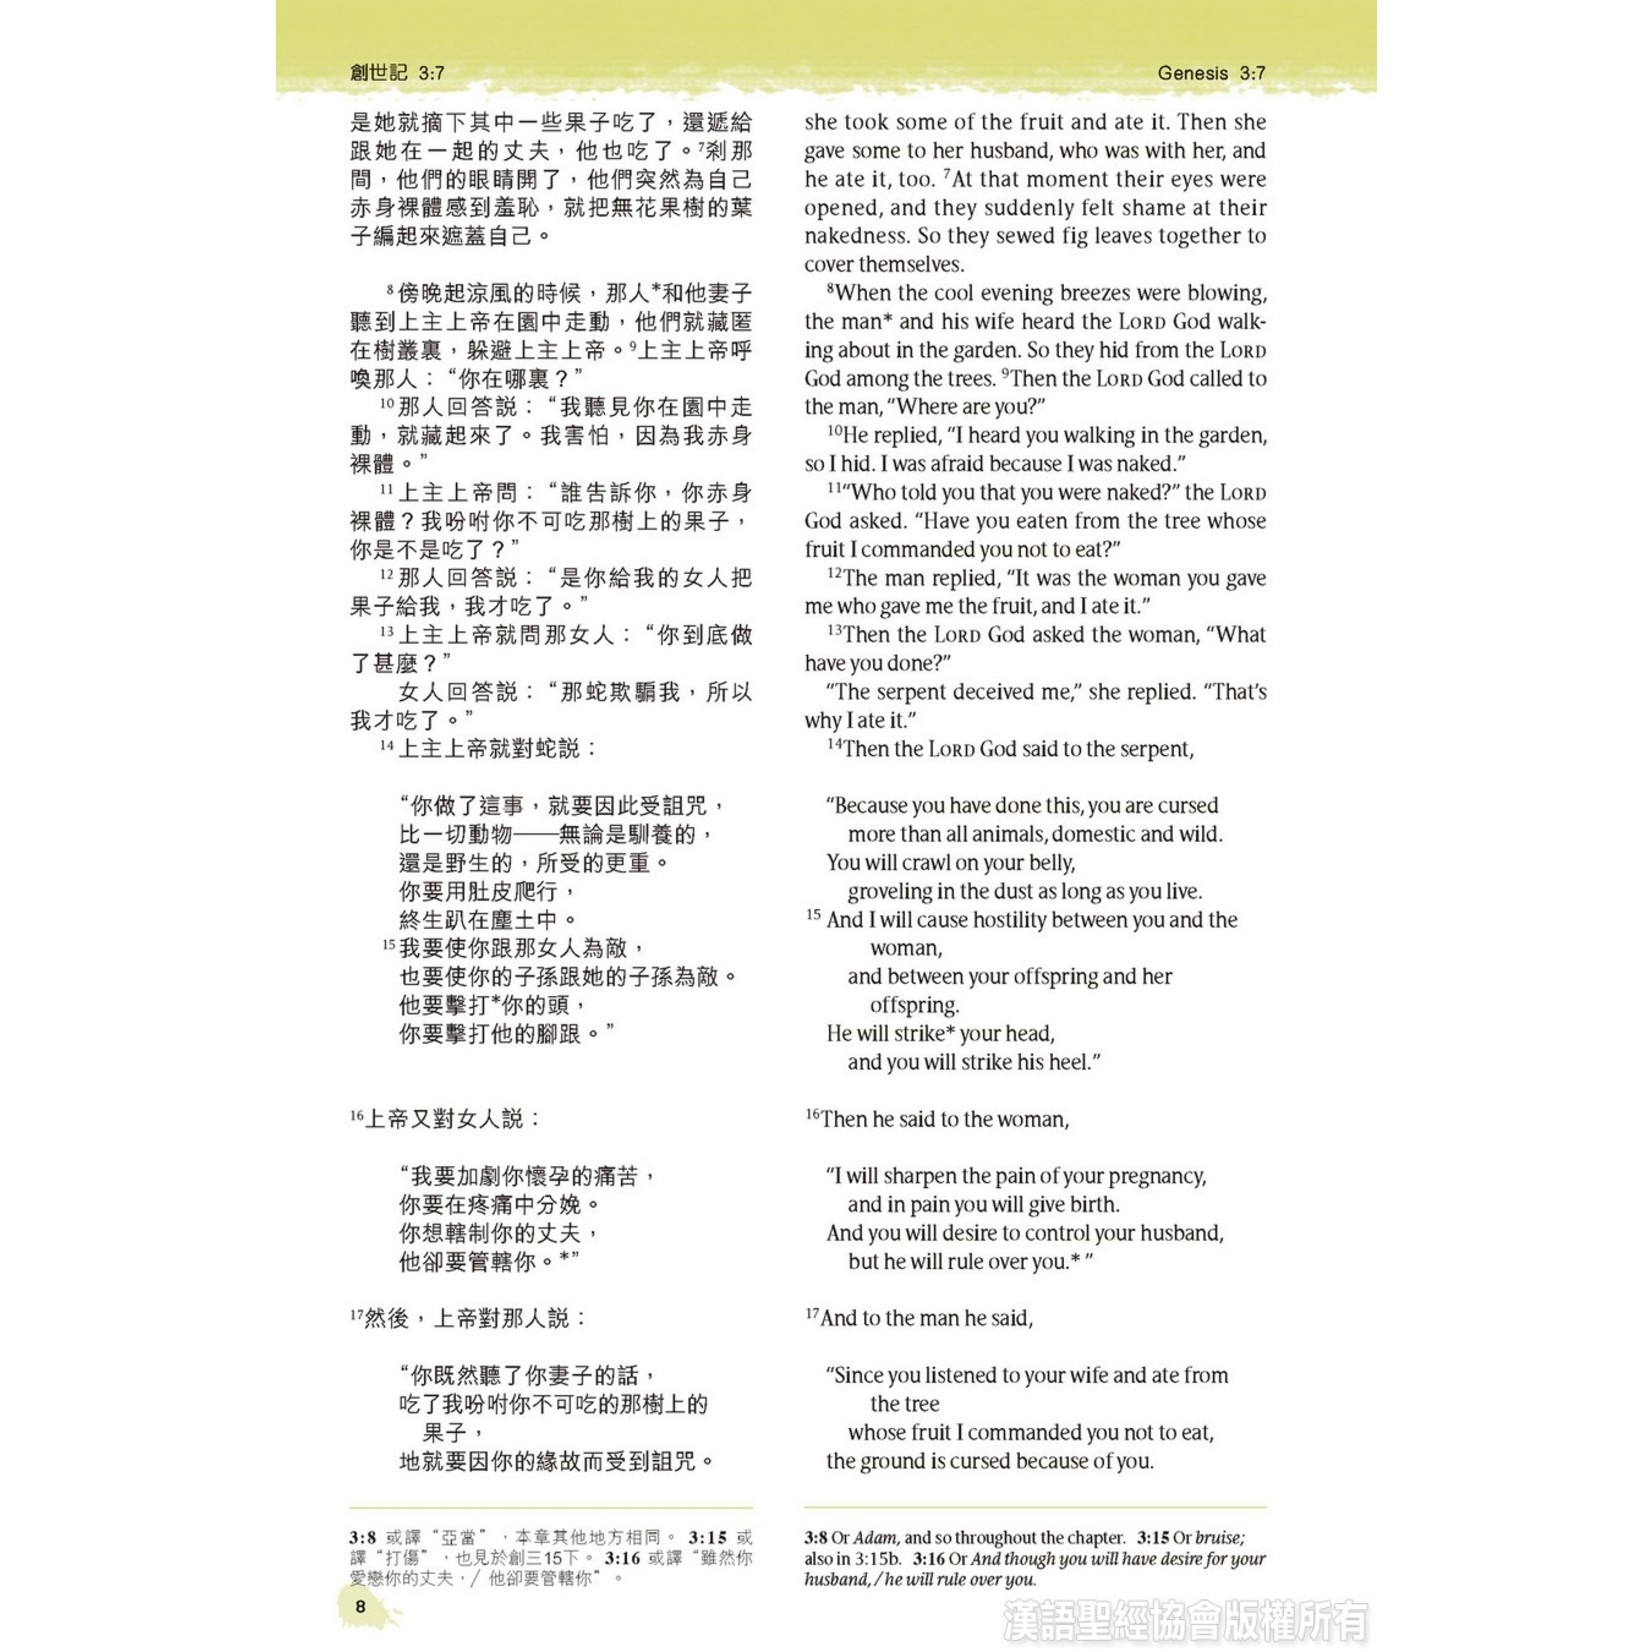 漢語聖經協會 Chinese Bible International 聖經.中英對照.新普及譯本/NLT.碧藍皮硬面.銀邊(繁體) Holy Bible, CNLT/NLT, Traditional Chinese/English, Hardback coated with Imitation Leather, Turquoise, Silvering